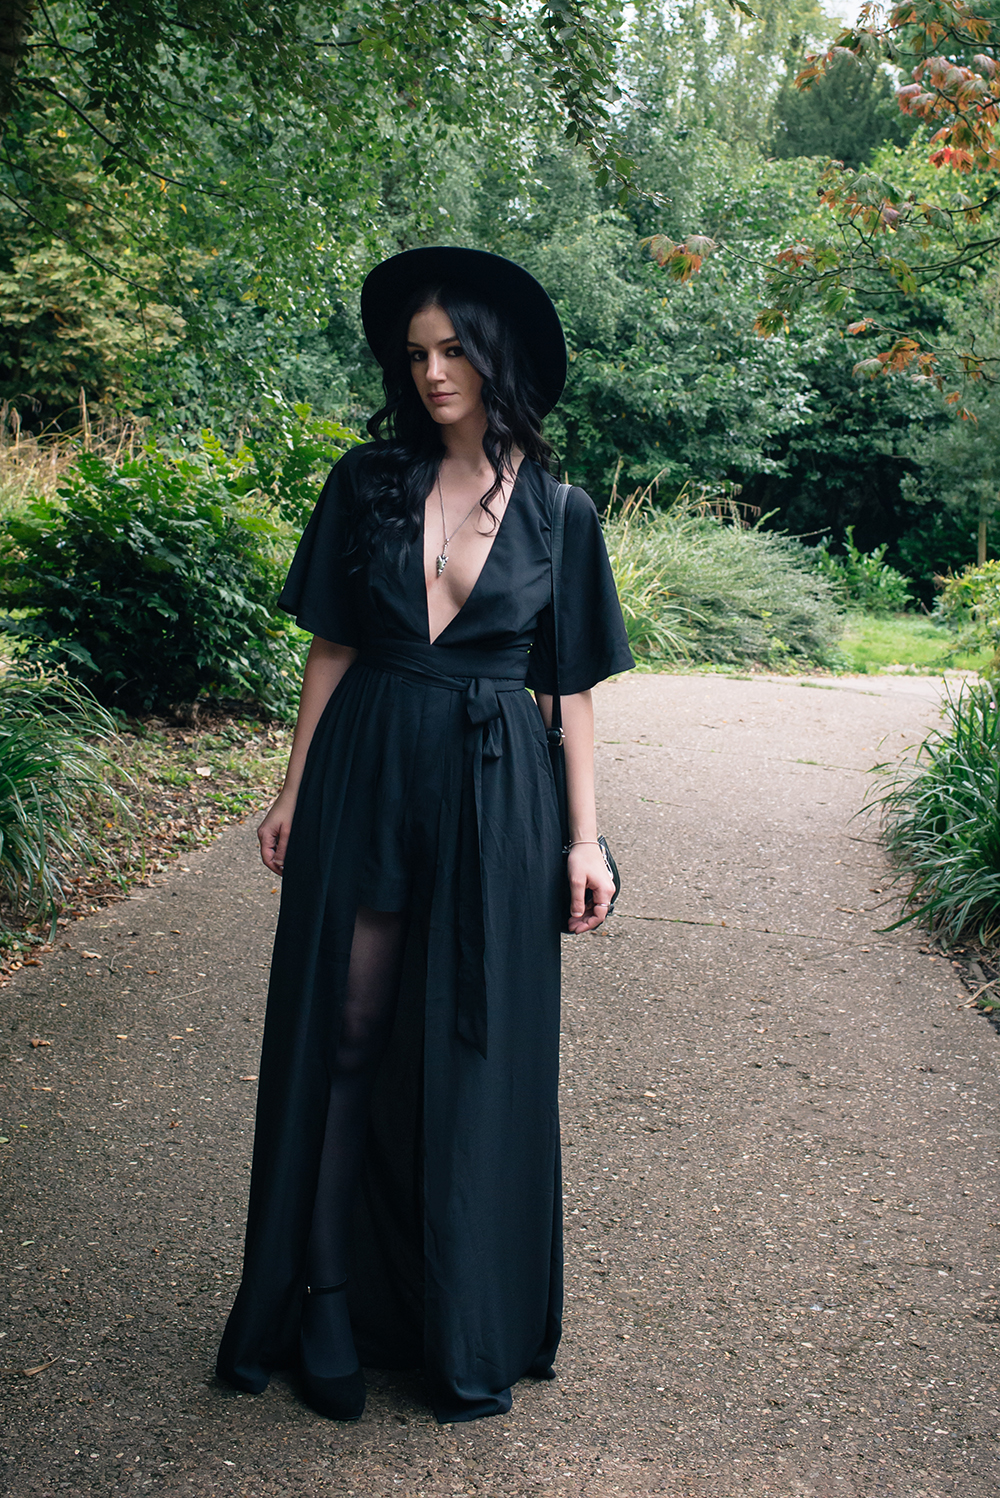 Fashion blogger Stephanie of FAIIINT wearing Tobi black maxi witchy kimono dress and wide brim hat. Dark gothic street style outfit.